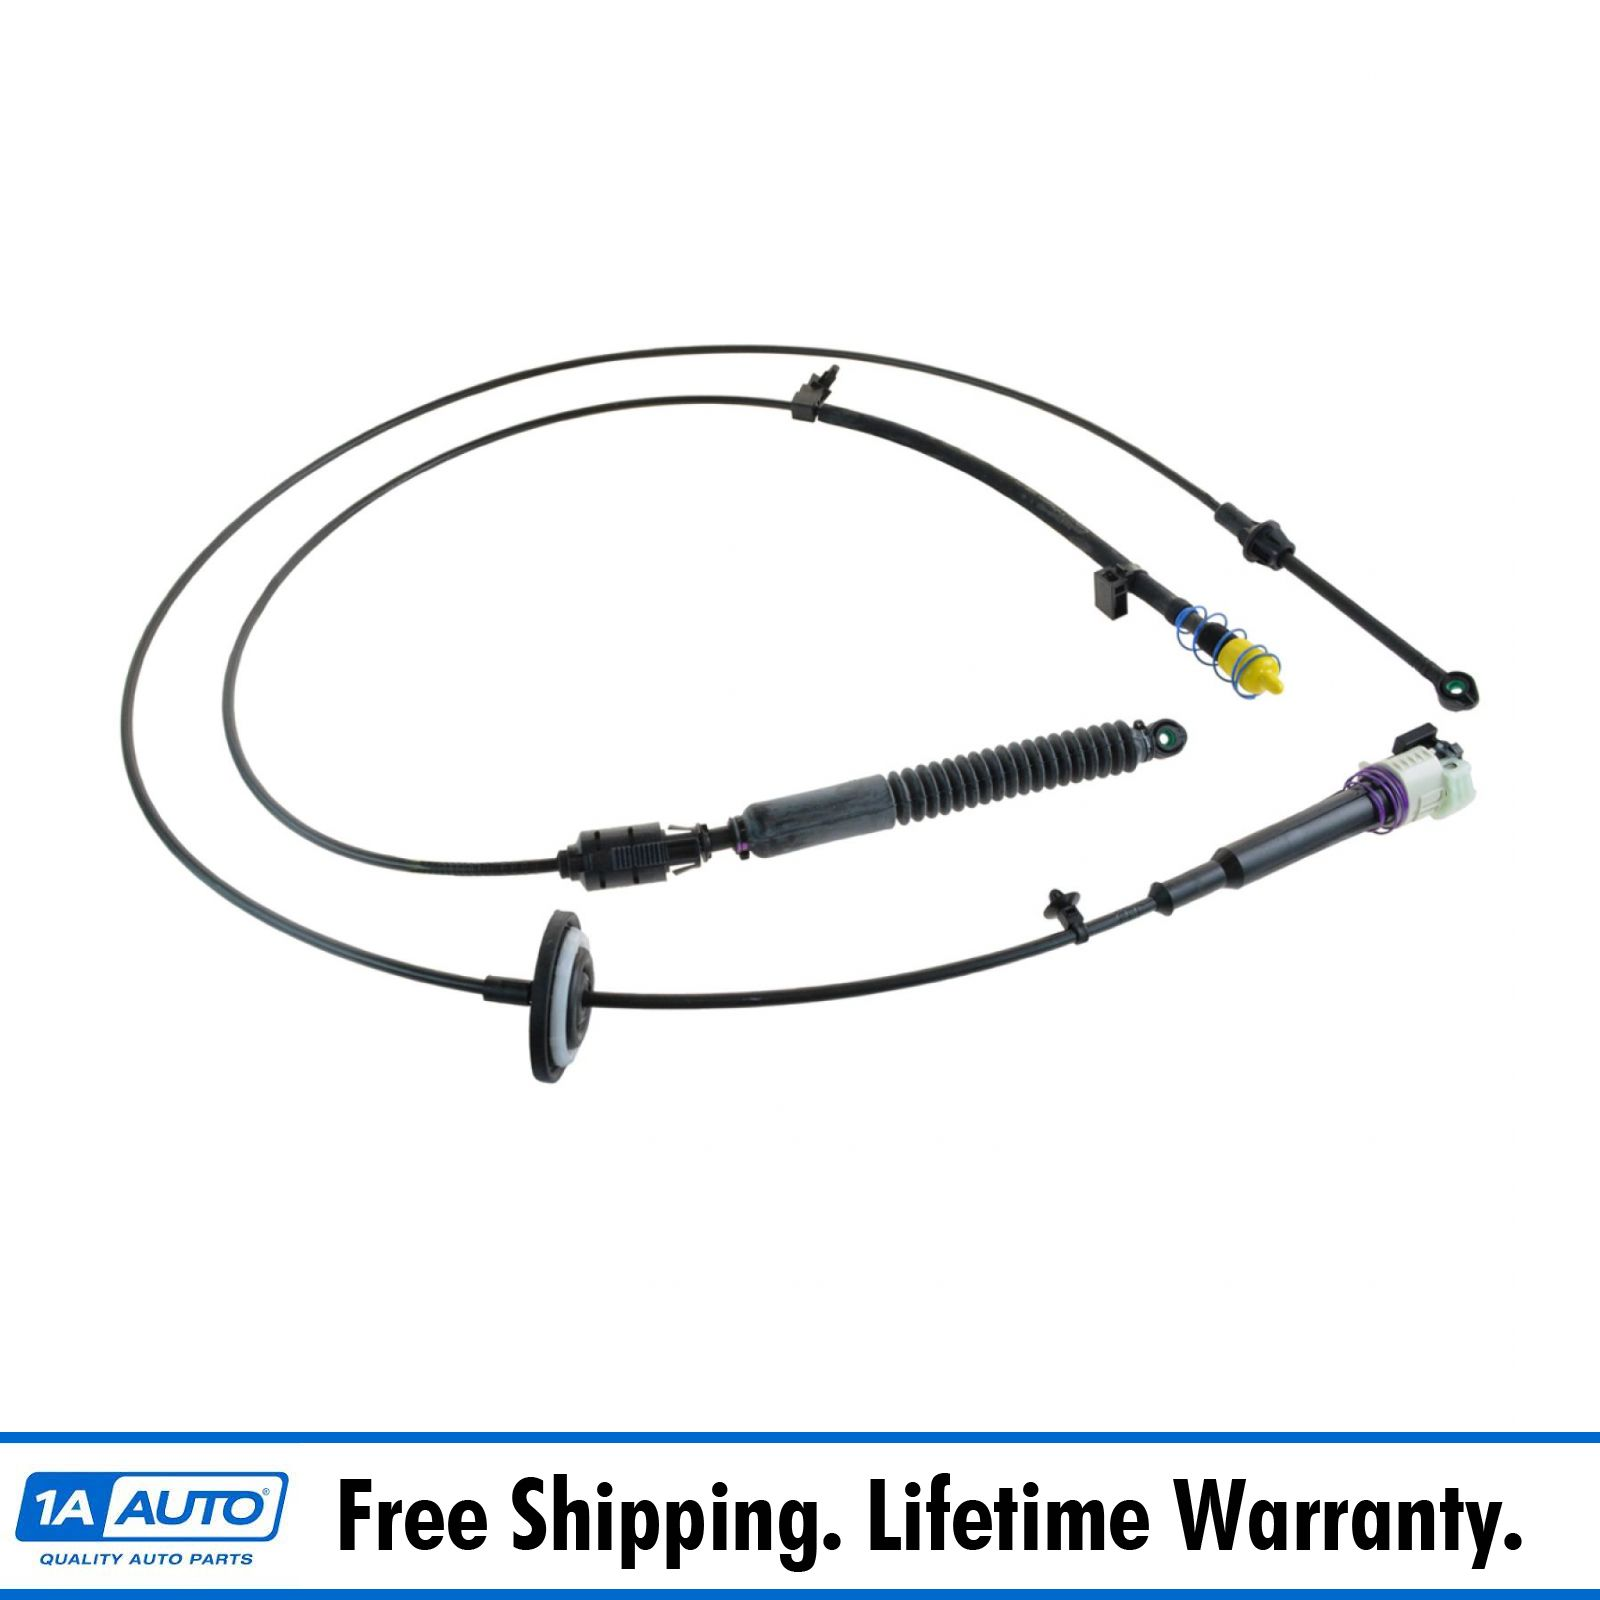 2003 Chevrolet Suburban 1500 Transmission: OEM 88967321 Auto Transmission Shifter Cable For Chevy GMC